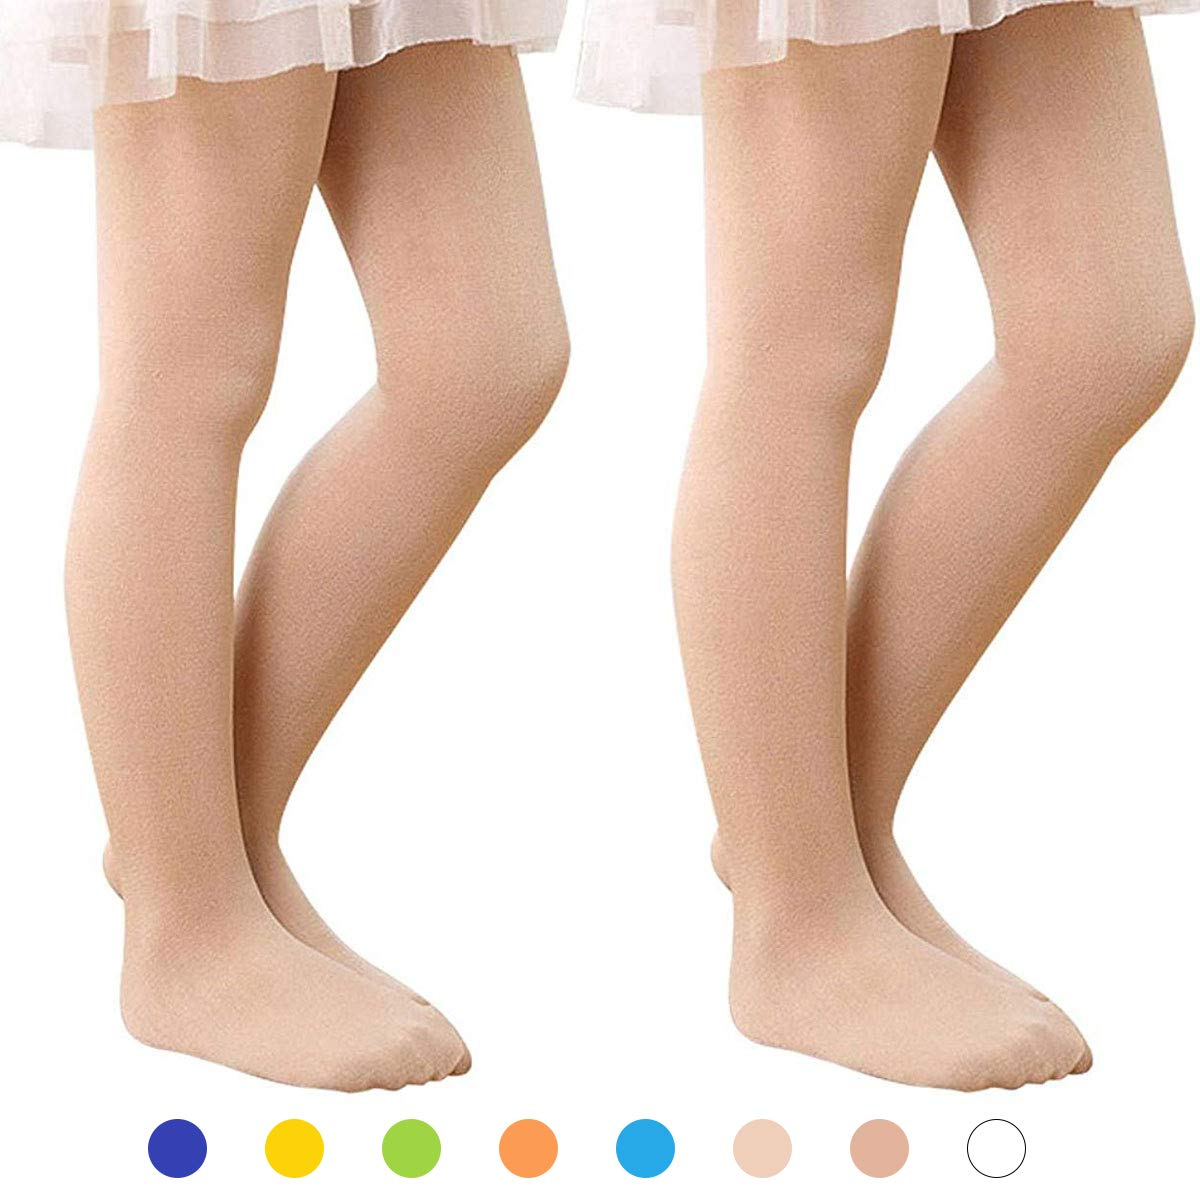 Zando Girl's Ultra Soft Pro Ballet Dance Tight Toddler Kids Footed Leggings Elastic Opaque Pants Tight 2 Pack Skin Color L